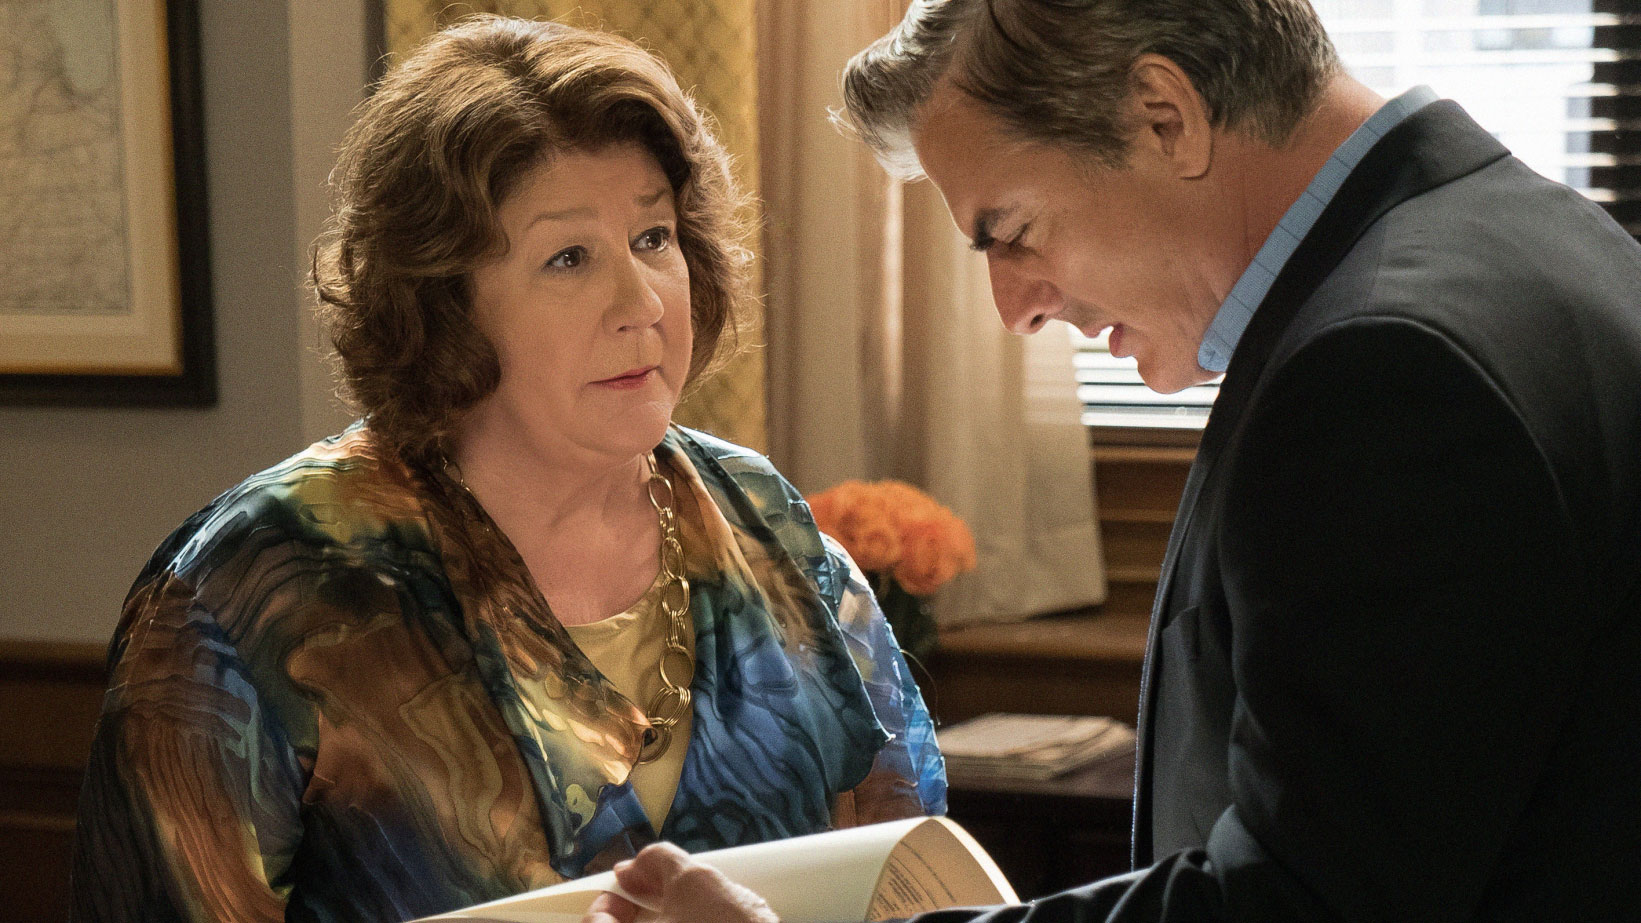 Margo Martindale as Ruth Eastman and Chris Noth as Peter Florrick